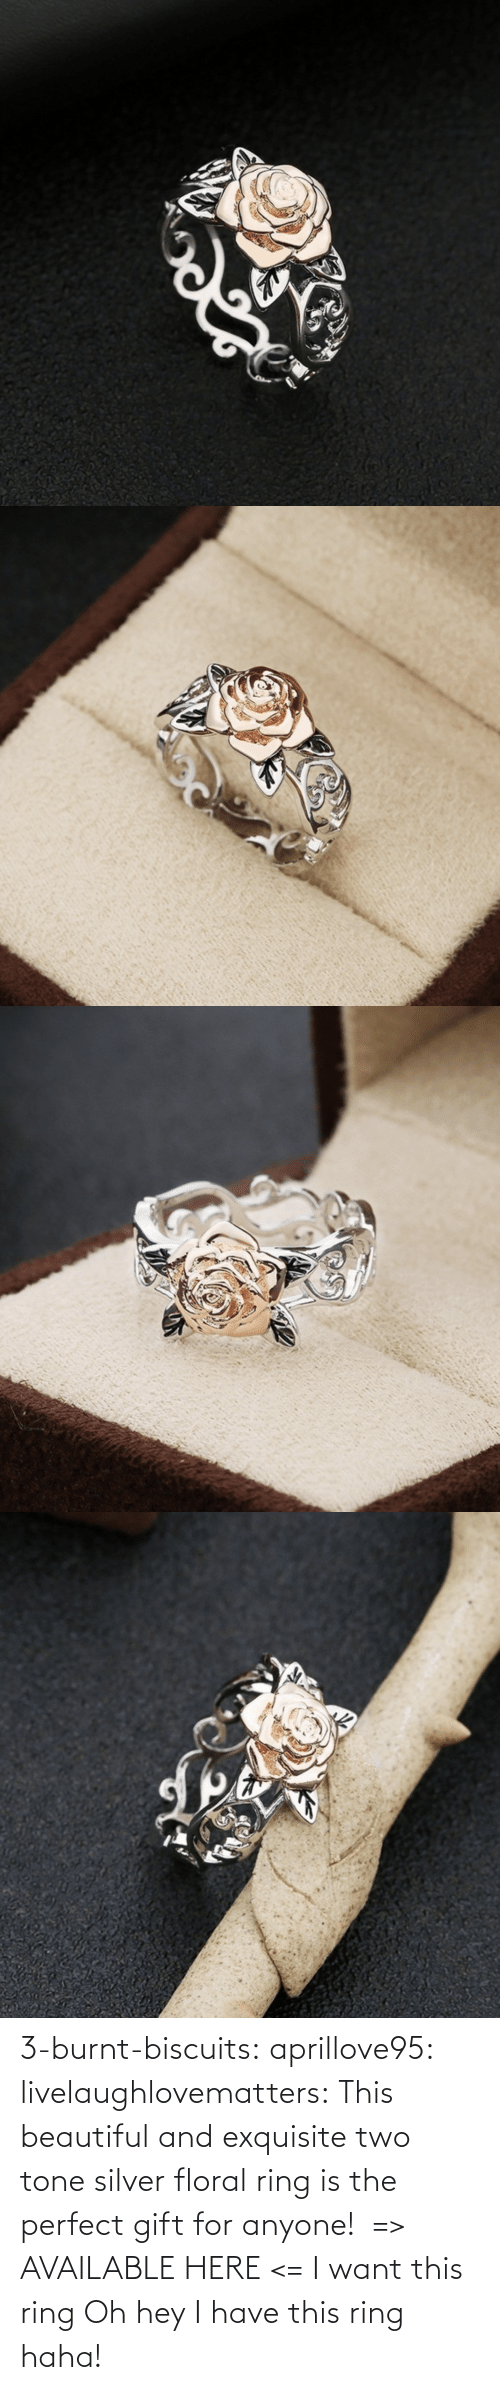 Silver: 3-burnt-biscuits: aprillove95:  livelaughlovematters:  This beautiful and exquisite two tone silver floral ring is the perfect gift for anyone!  => AVAILABLE HERE <=    I want this ring     Oh hey I have this ring haha!